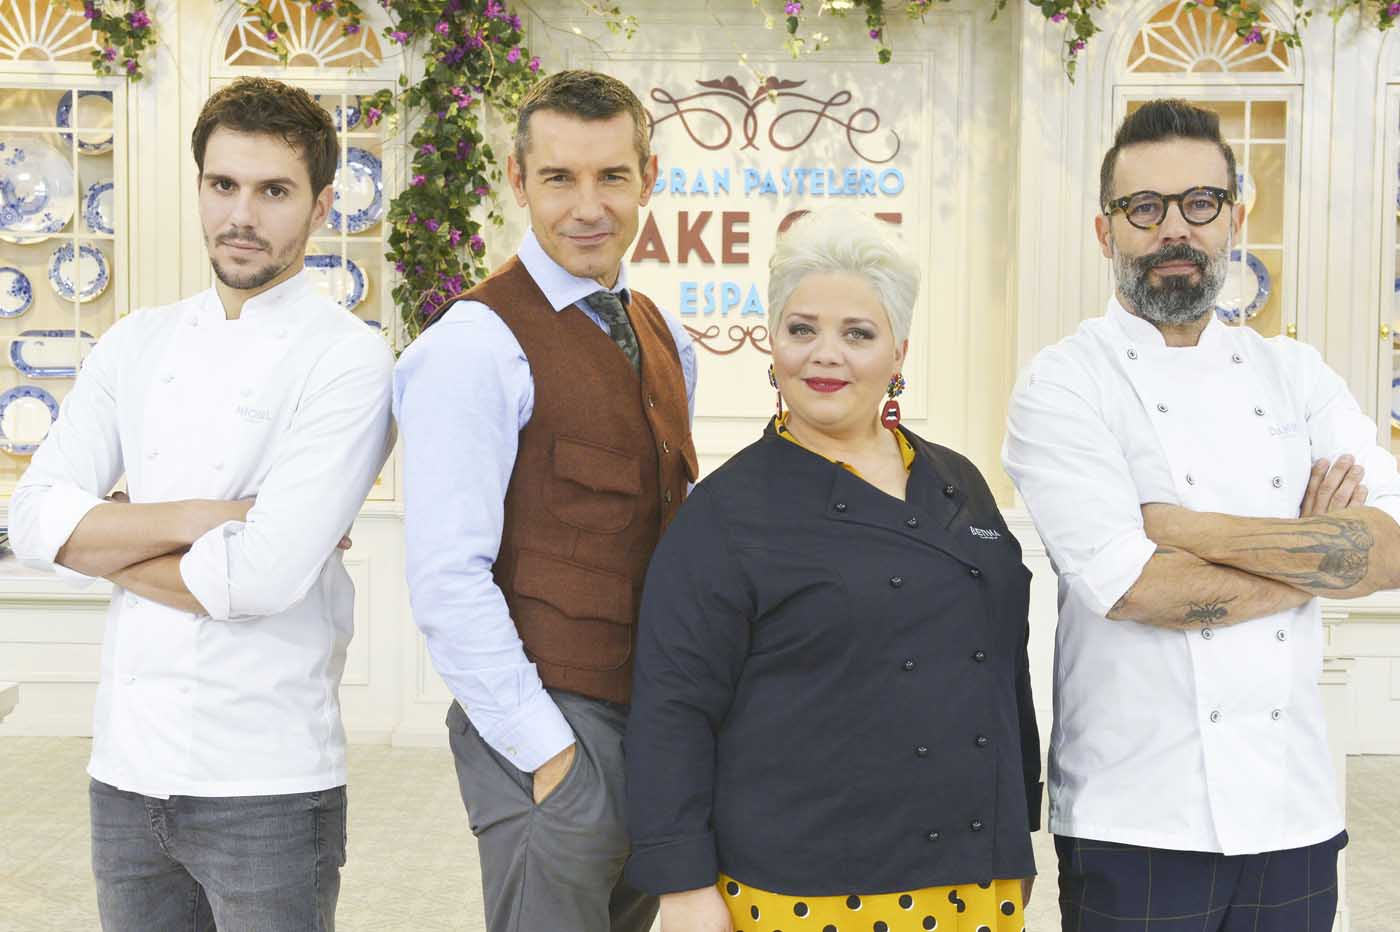 Crítica Bake off